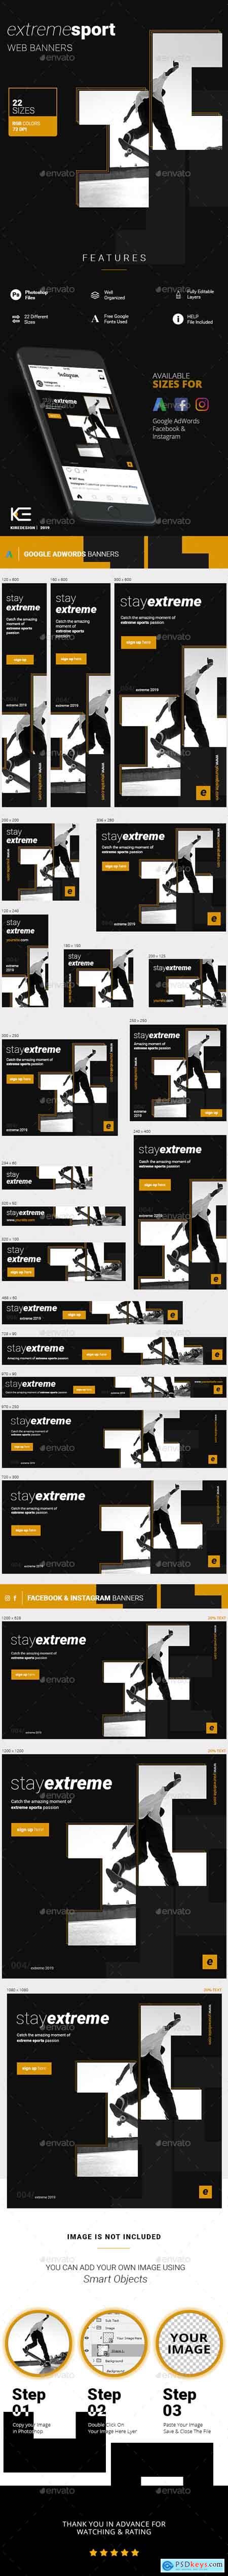 Graphicriver Sport Banners